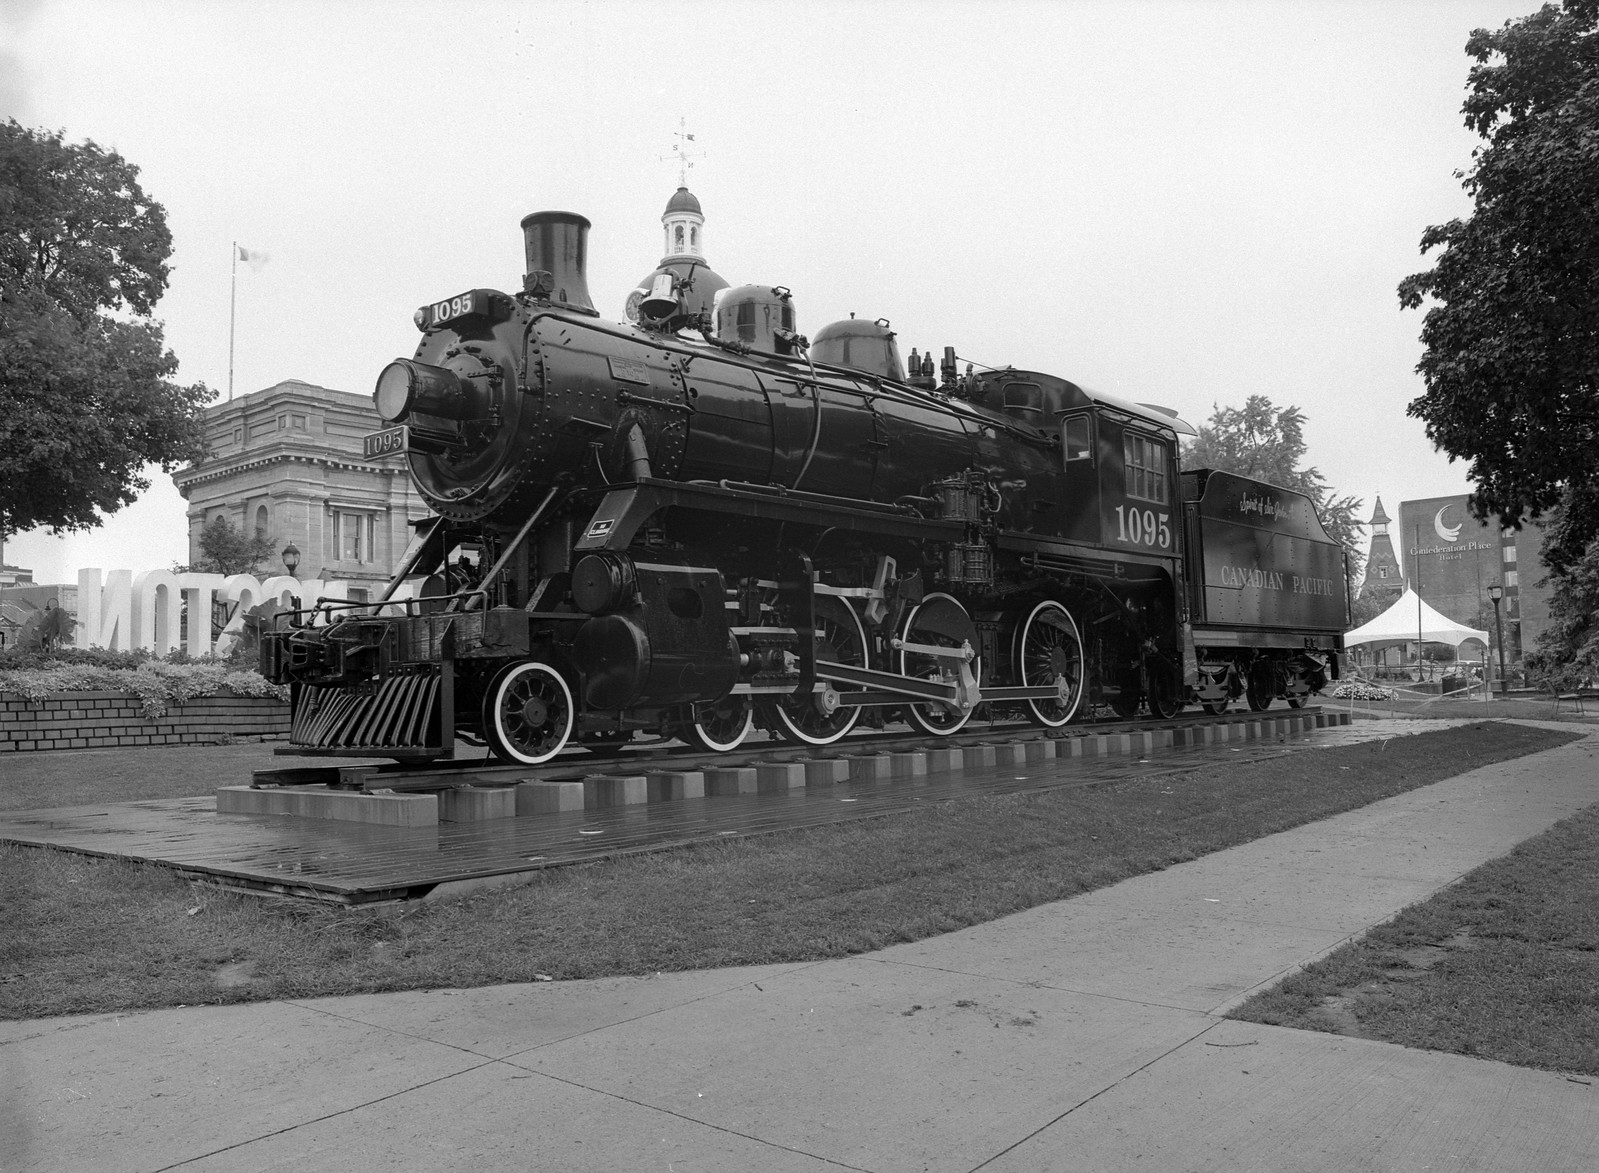 Project:1867 - Canadian Pacific Railroad